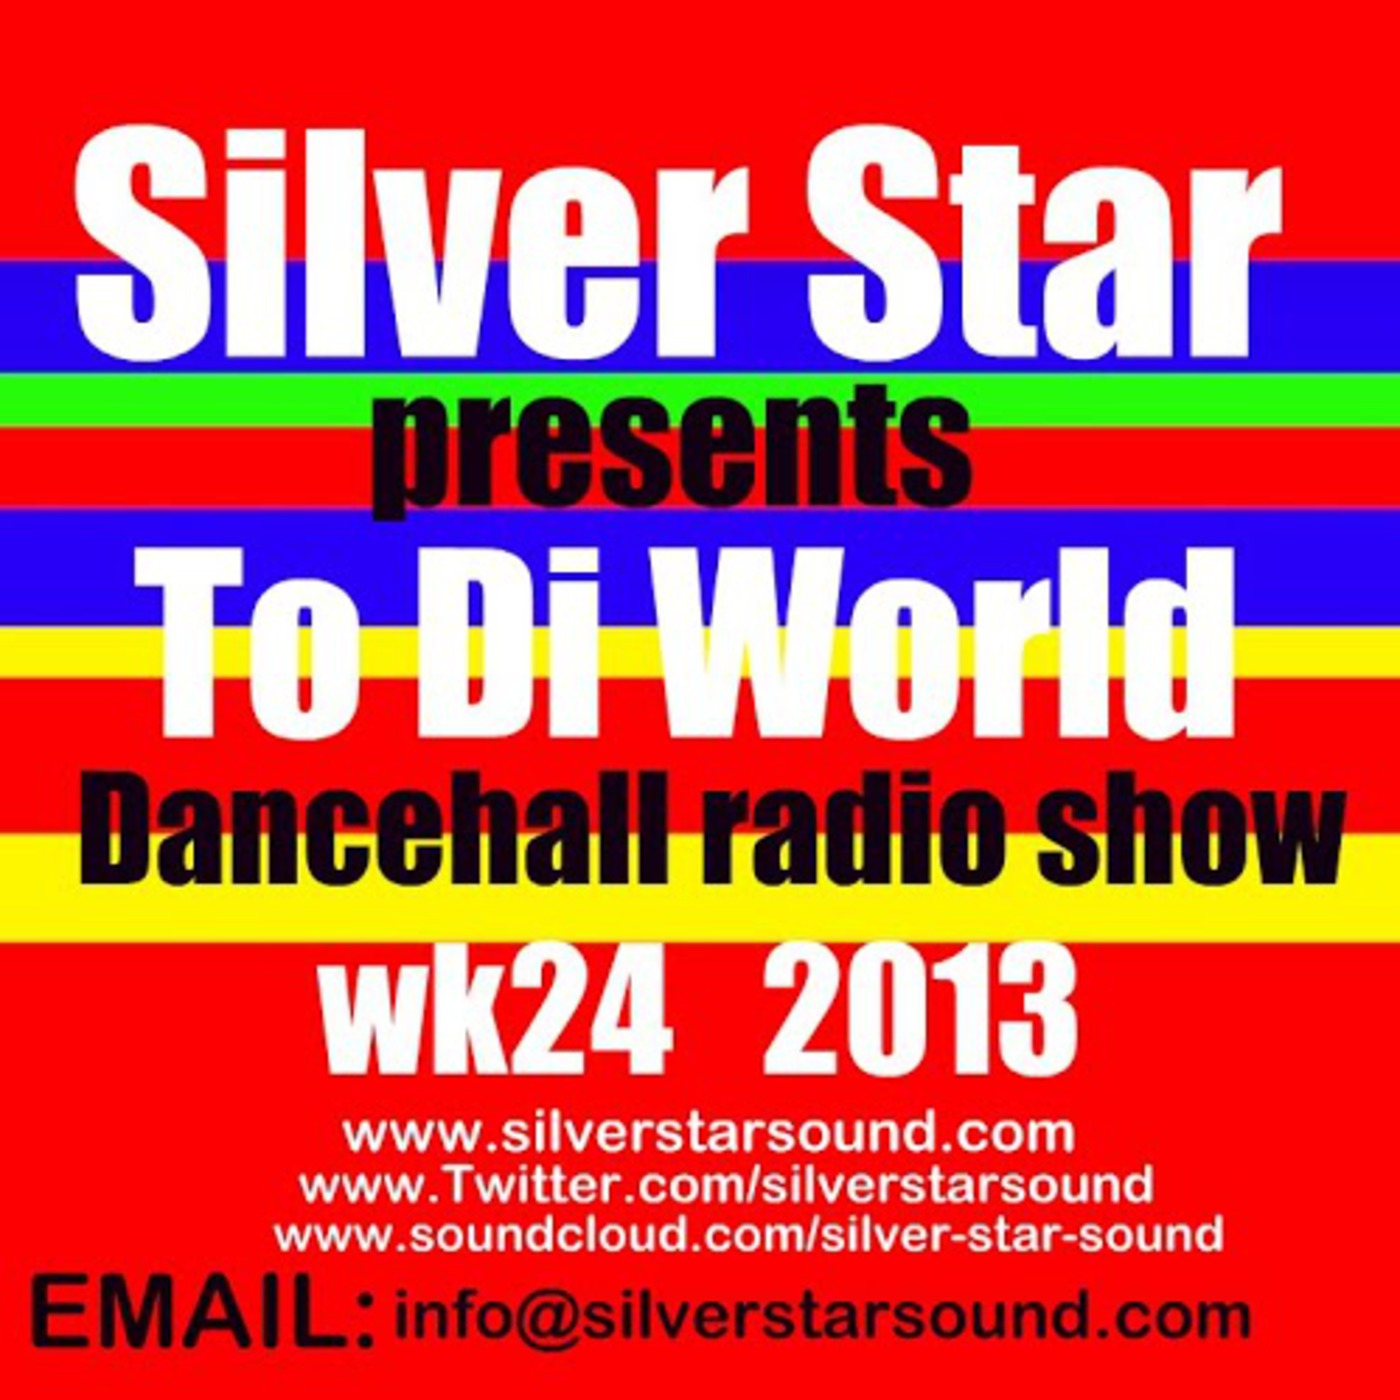 Silver Star Sounds To Di World  International Dancehall Radio Show